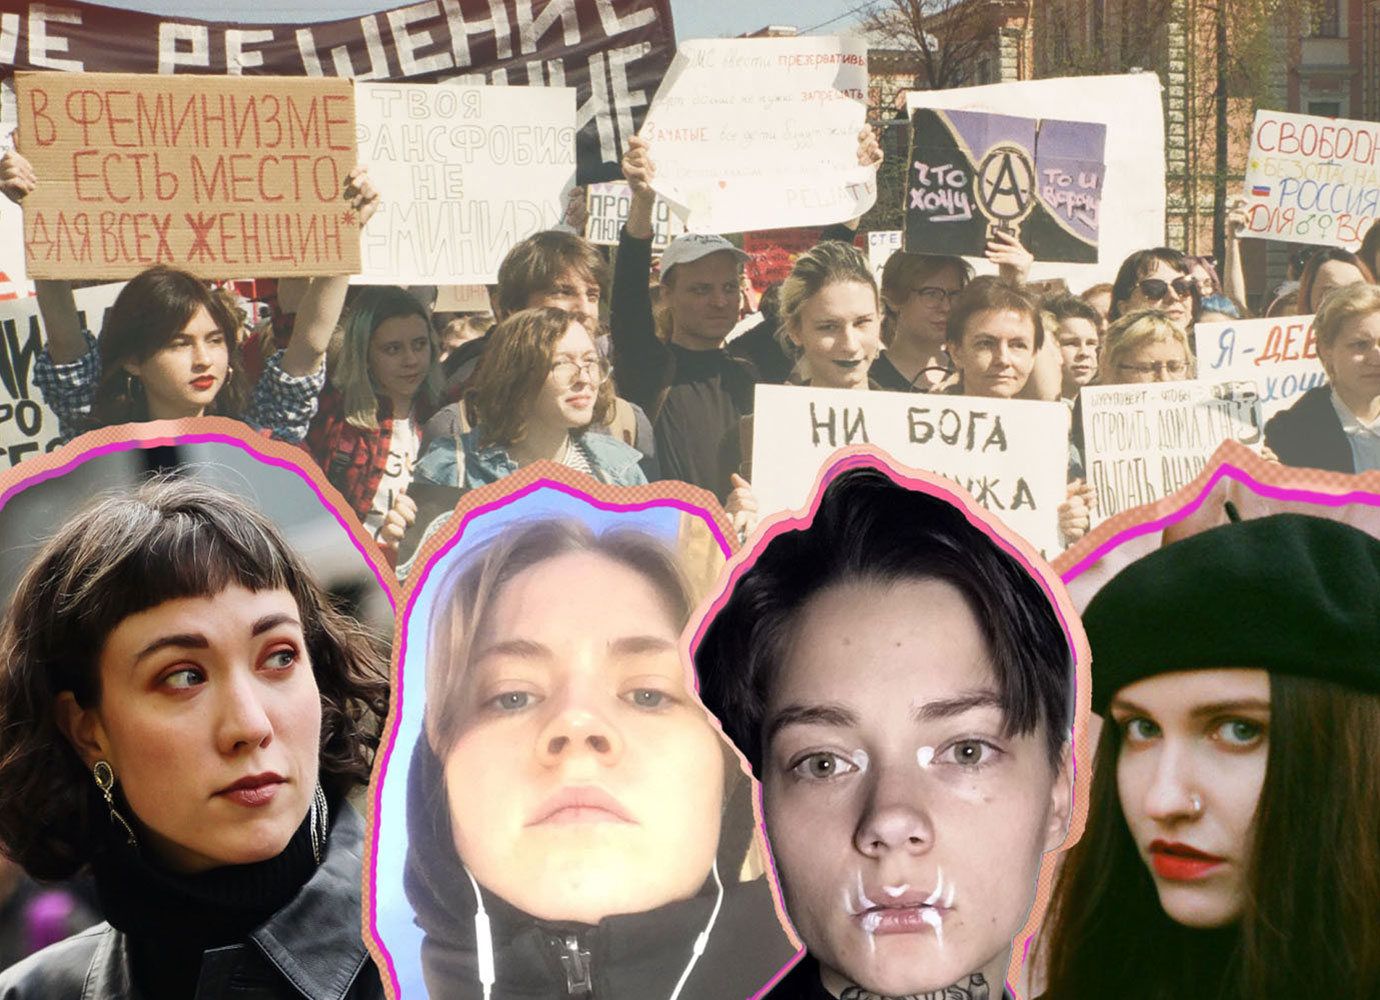 Art, activism, advocacy. Listen to our podcast on the future of Russian feminism